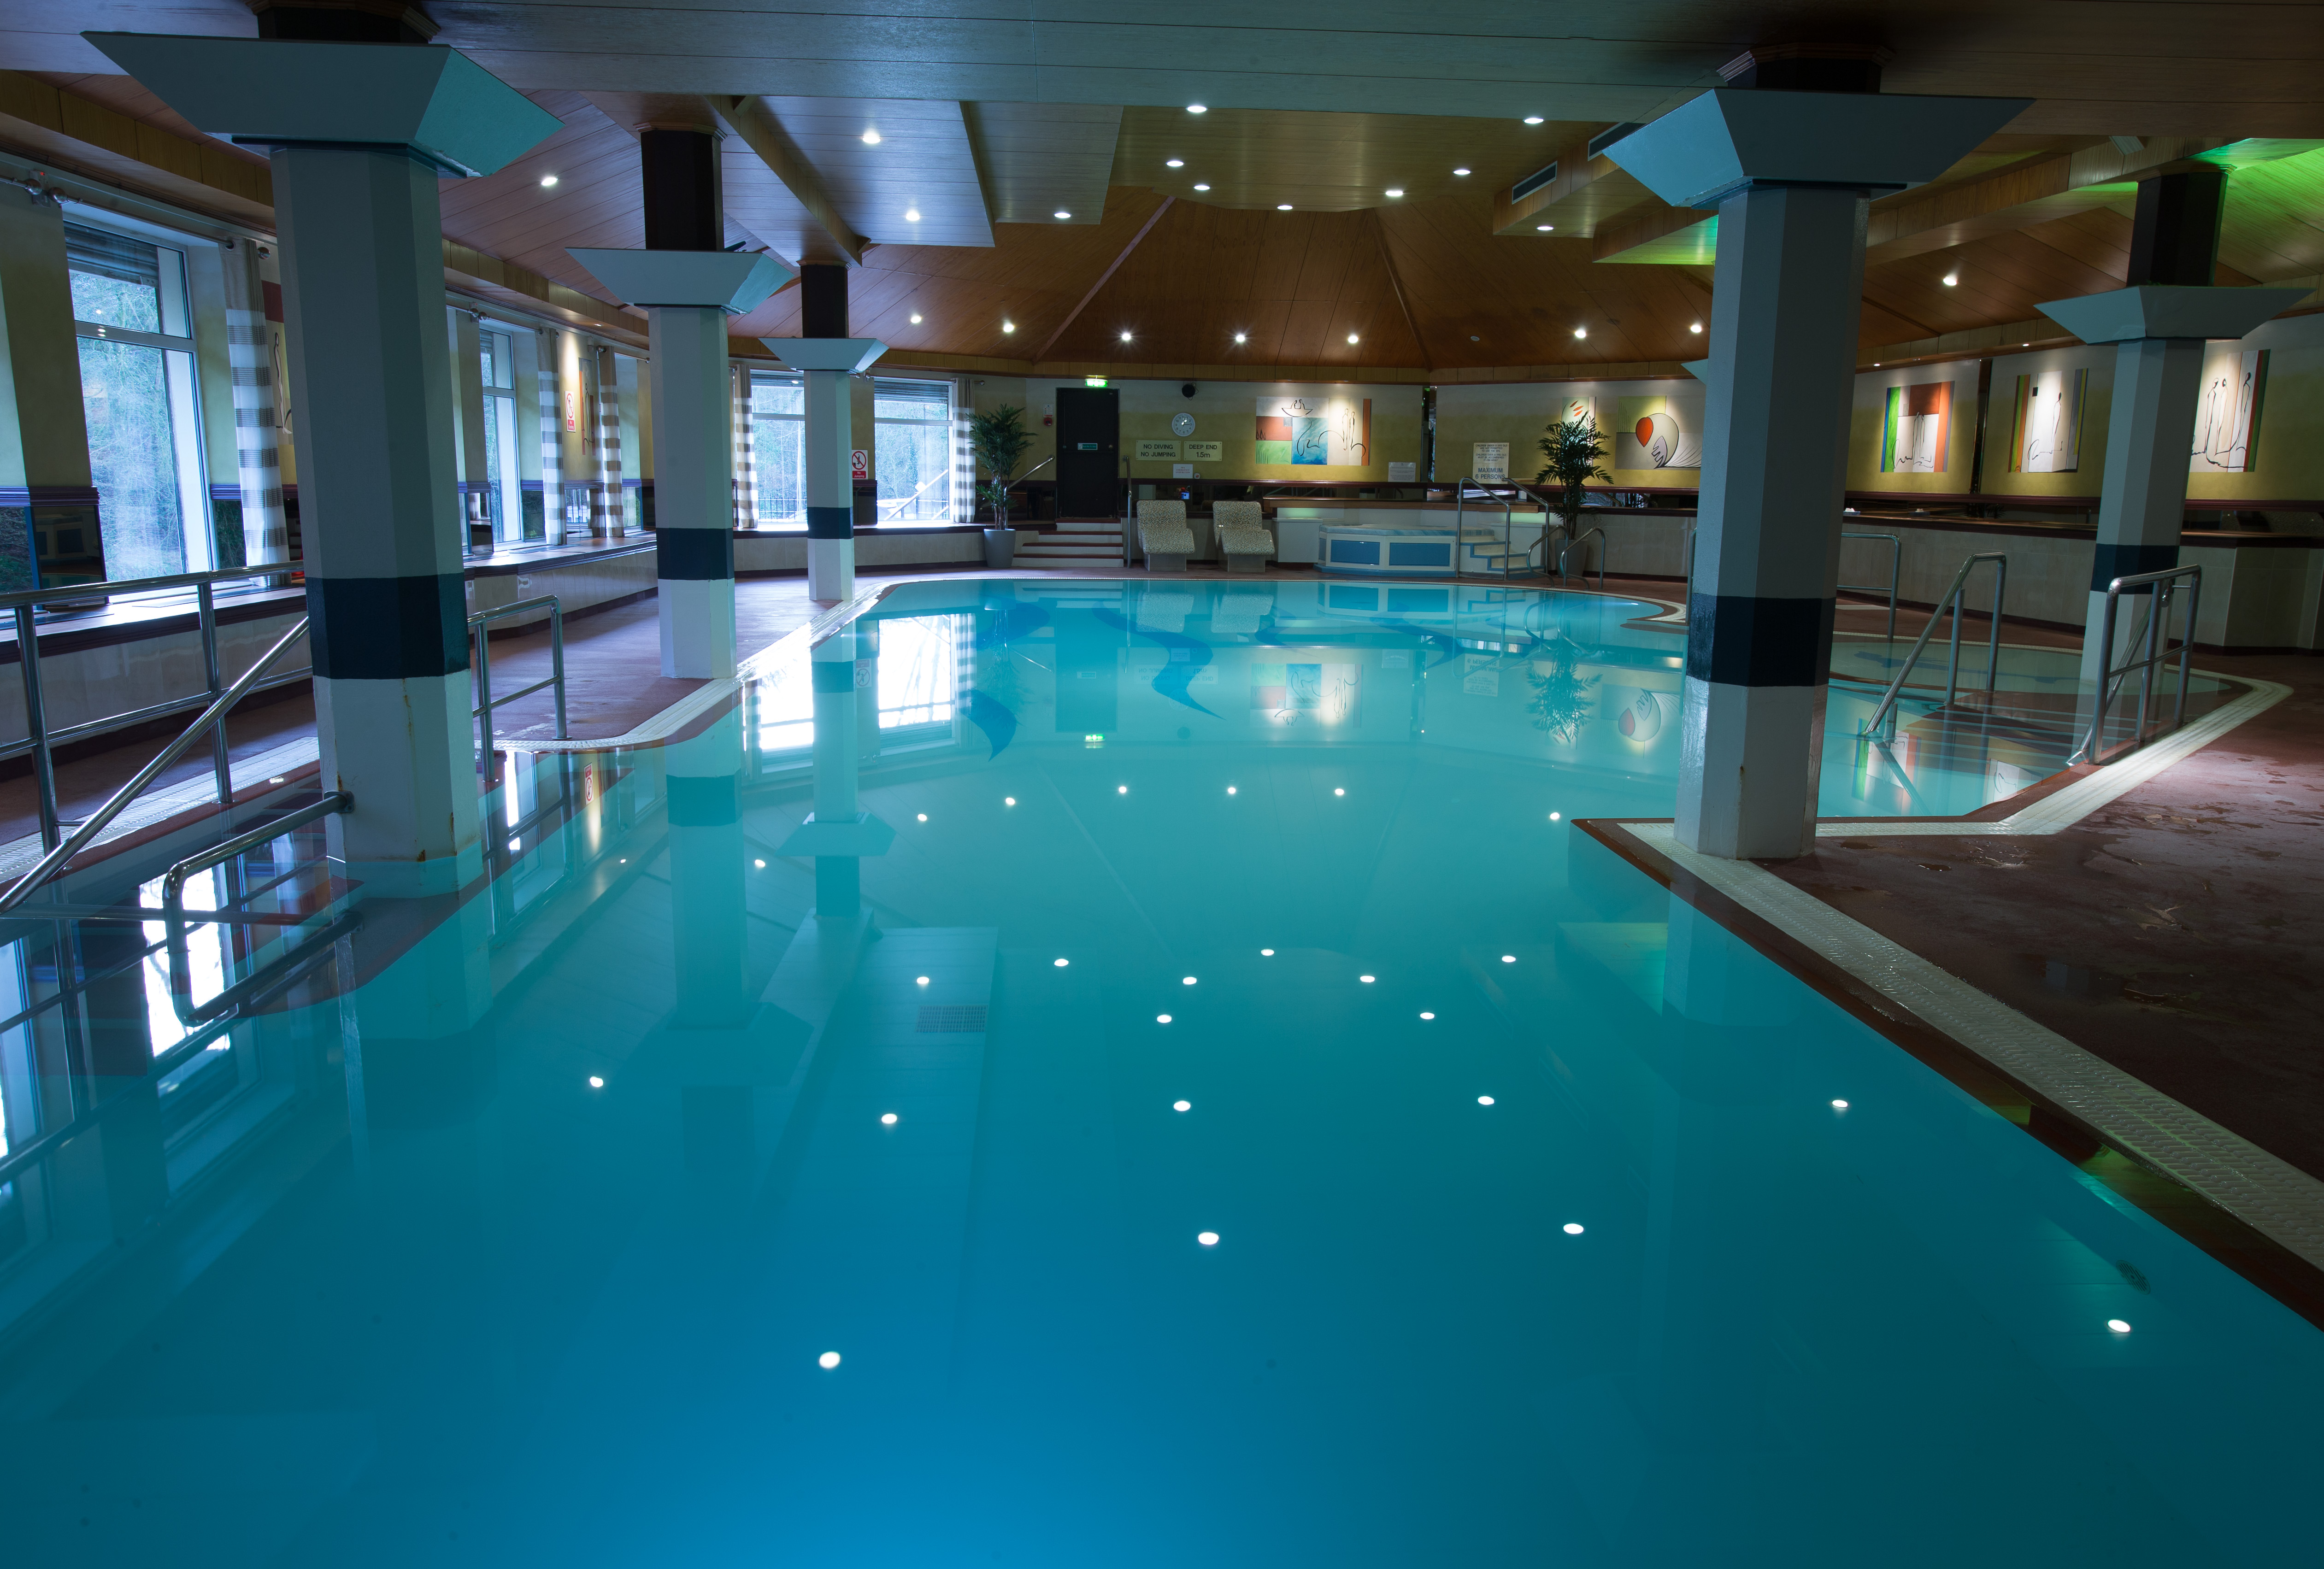 Membership glenavon house hotel leisure centre membership - Cheap hotels in aberdeen with swimming pool ...